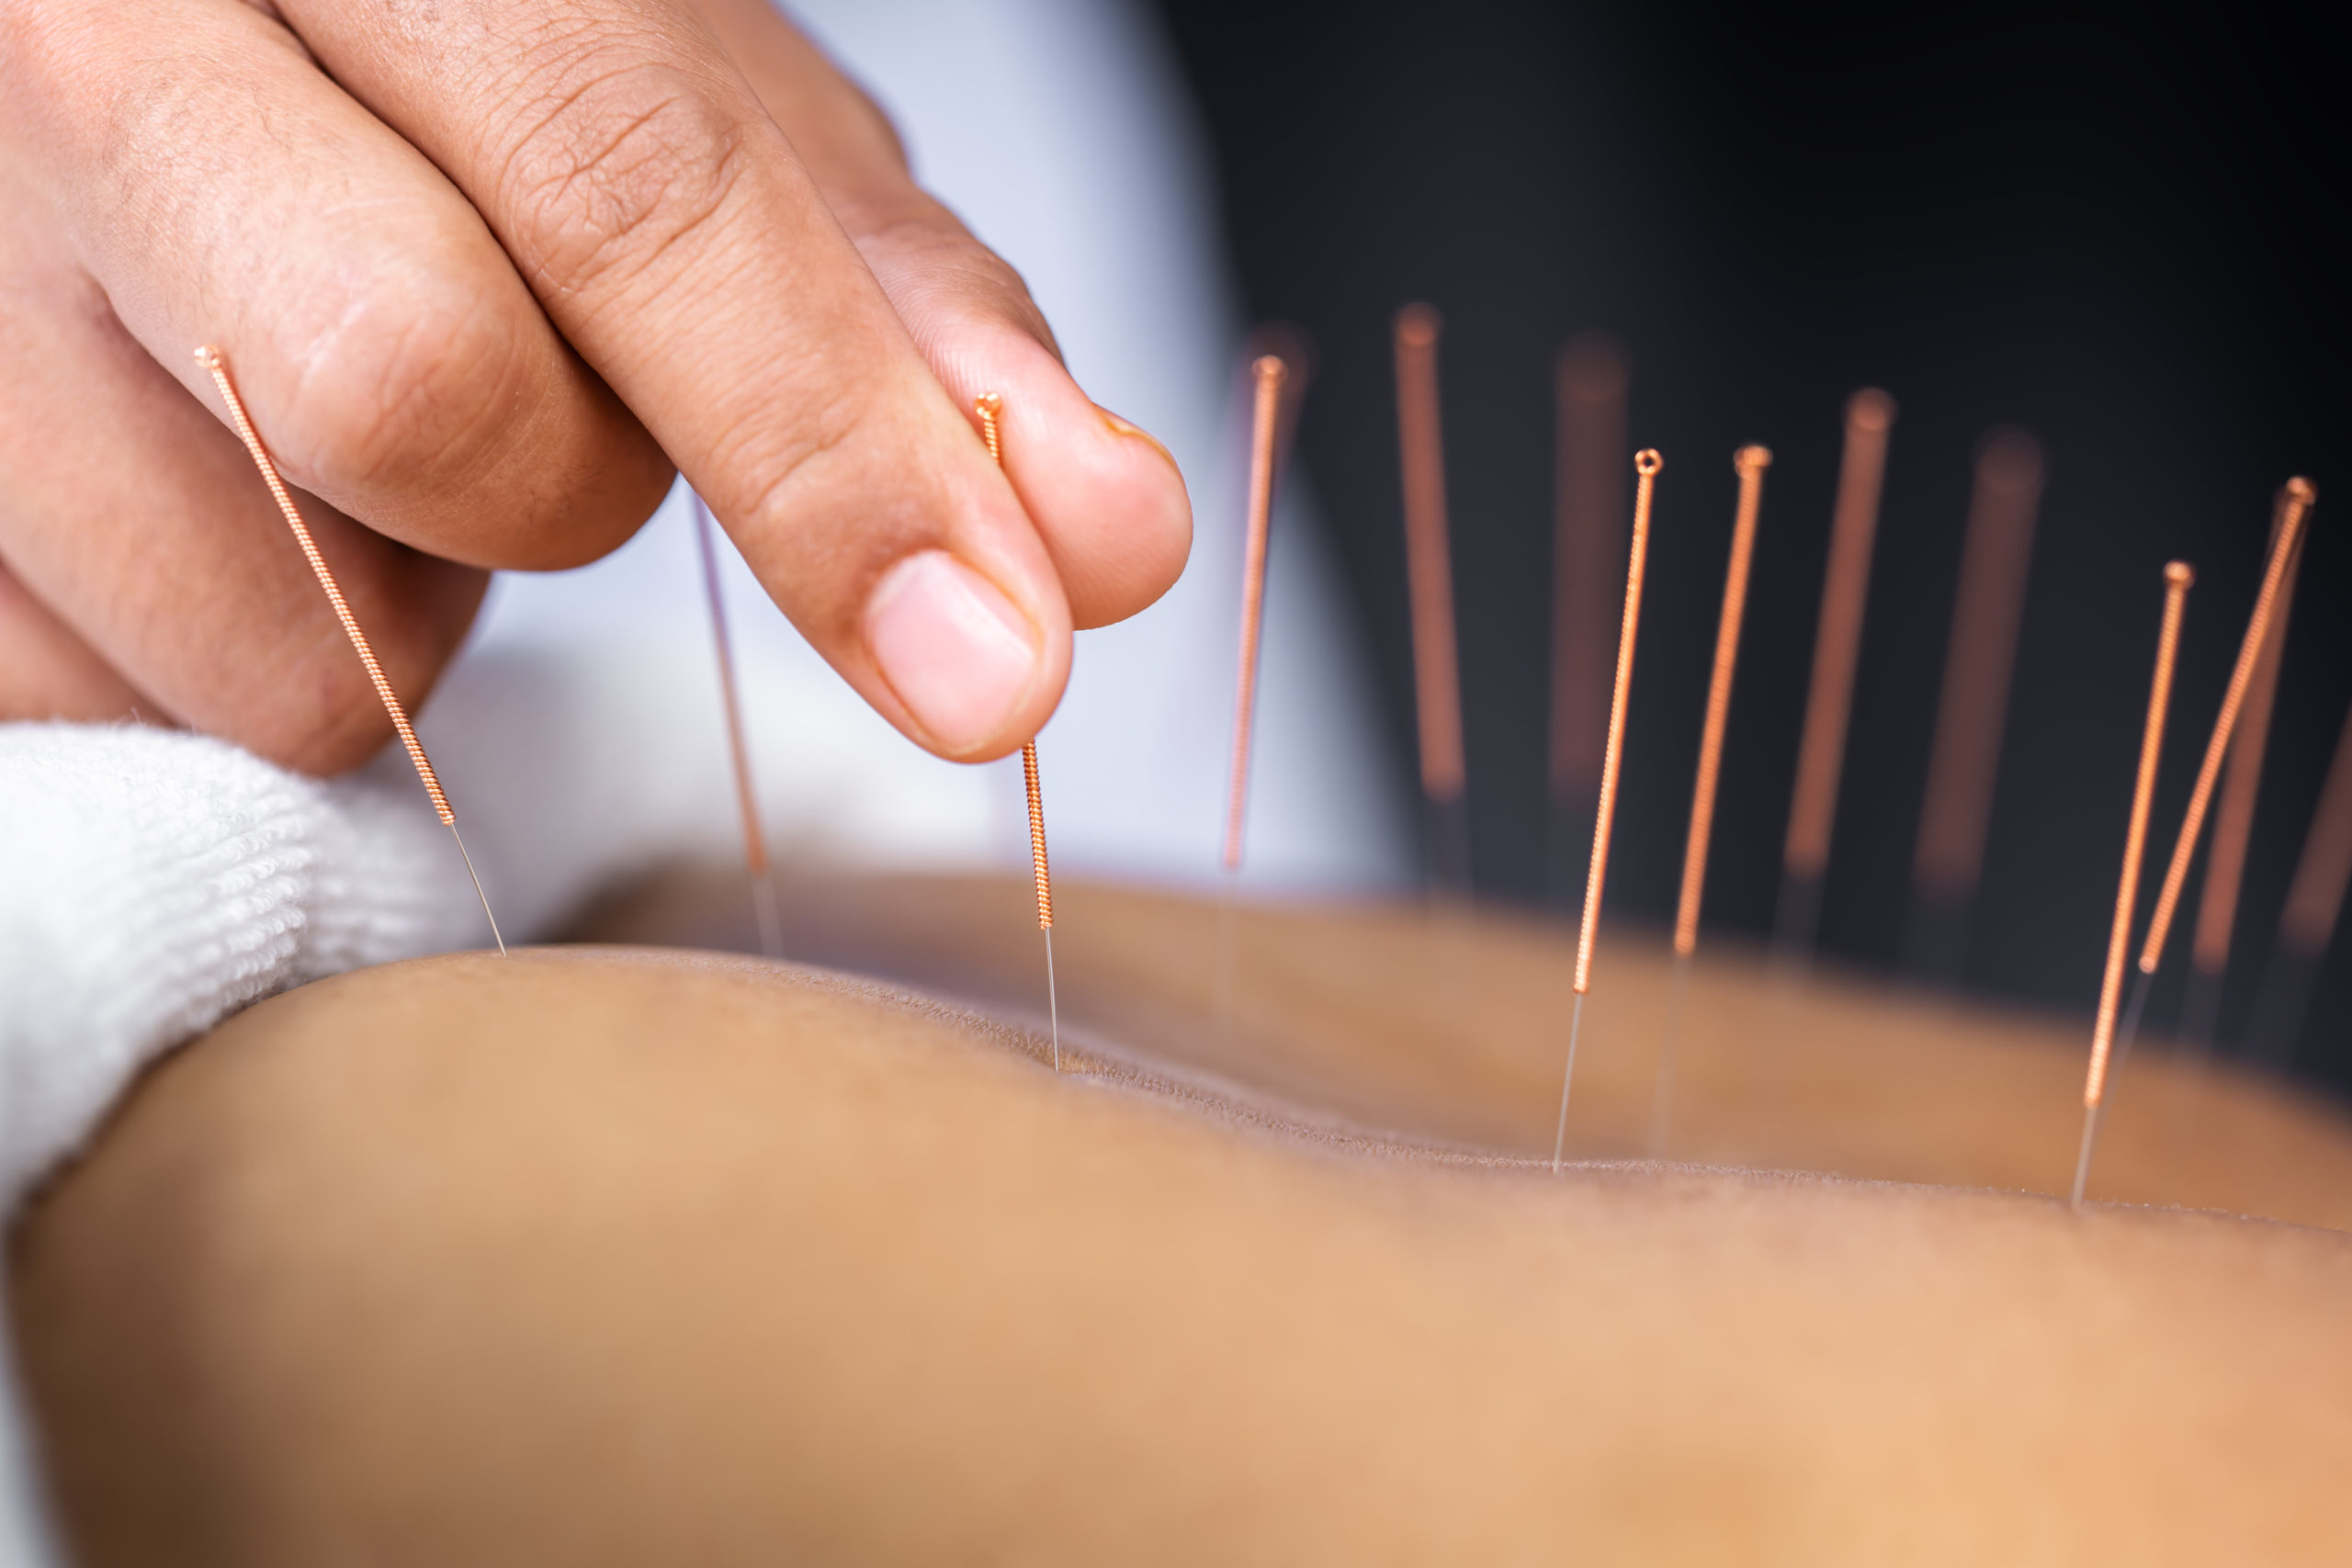 ACUPUNCTURE | kinetichealth